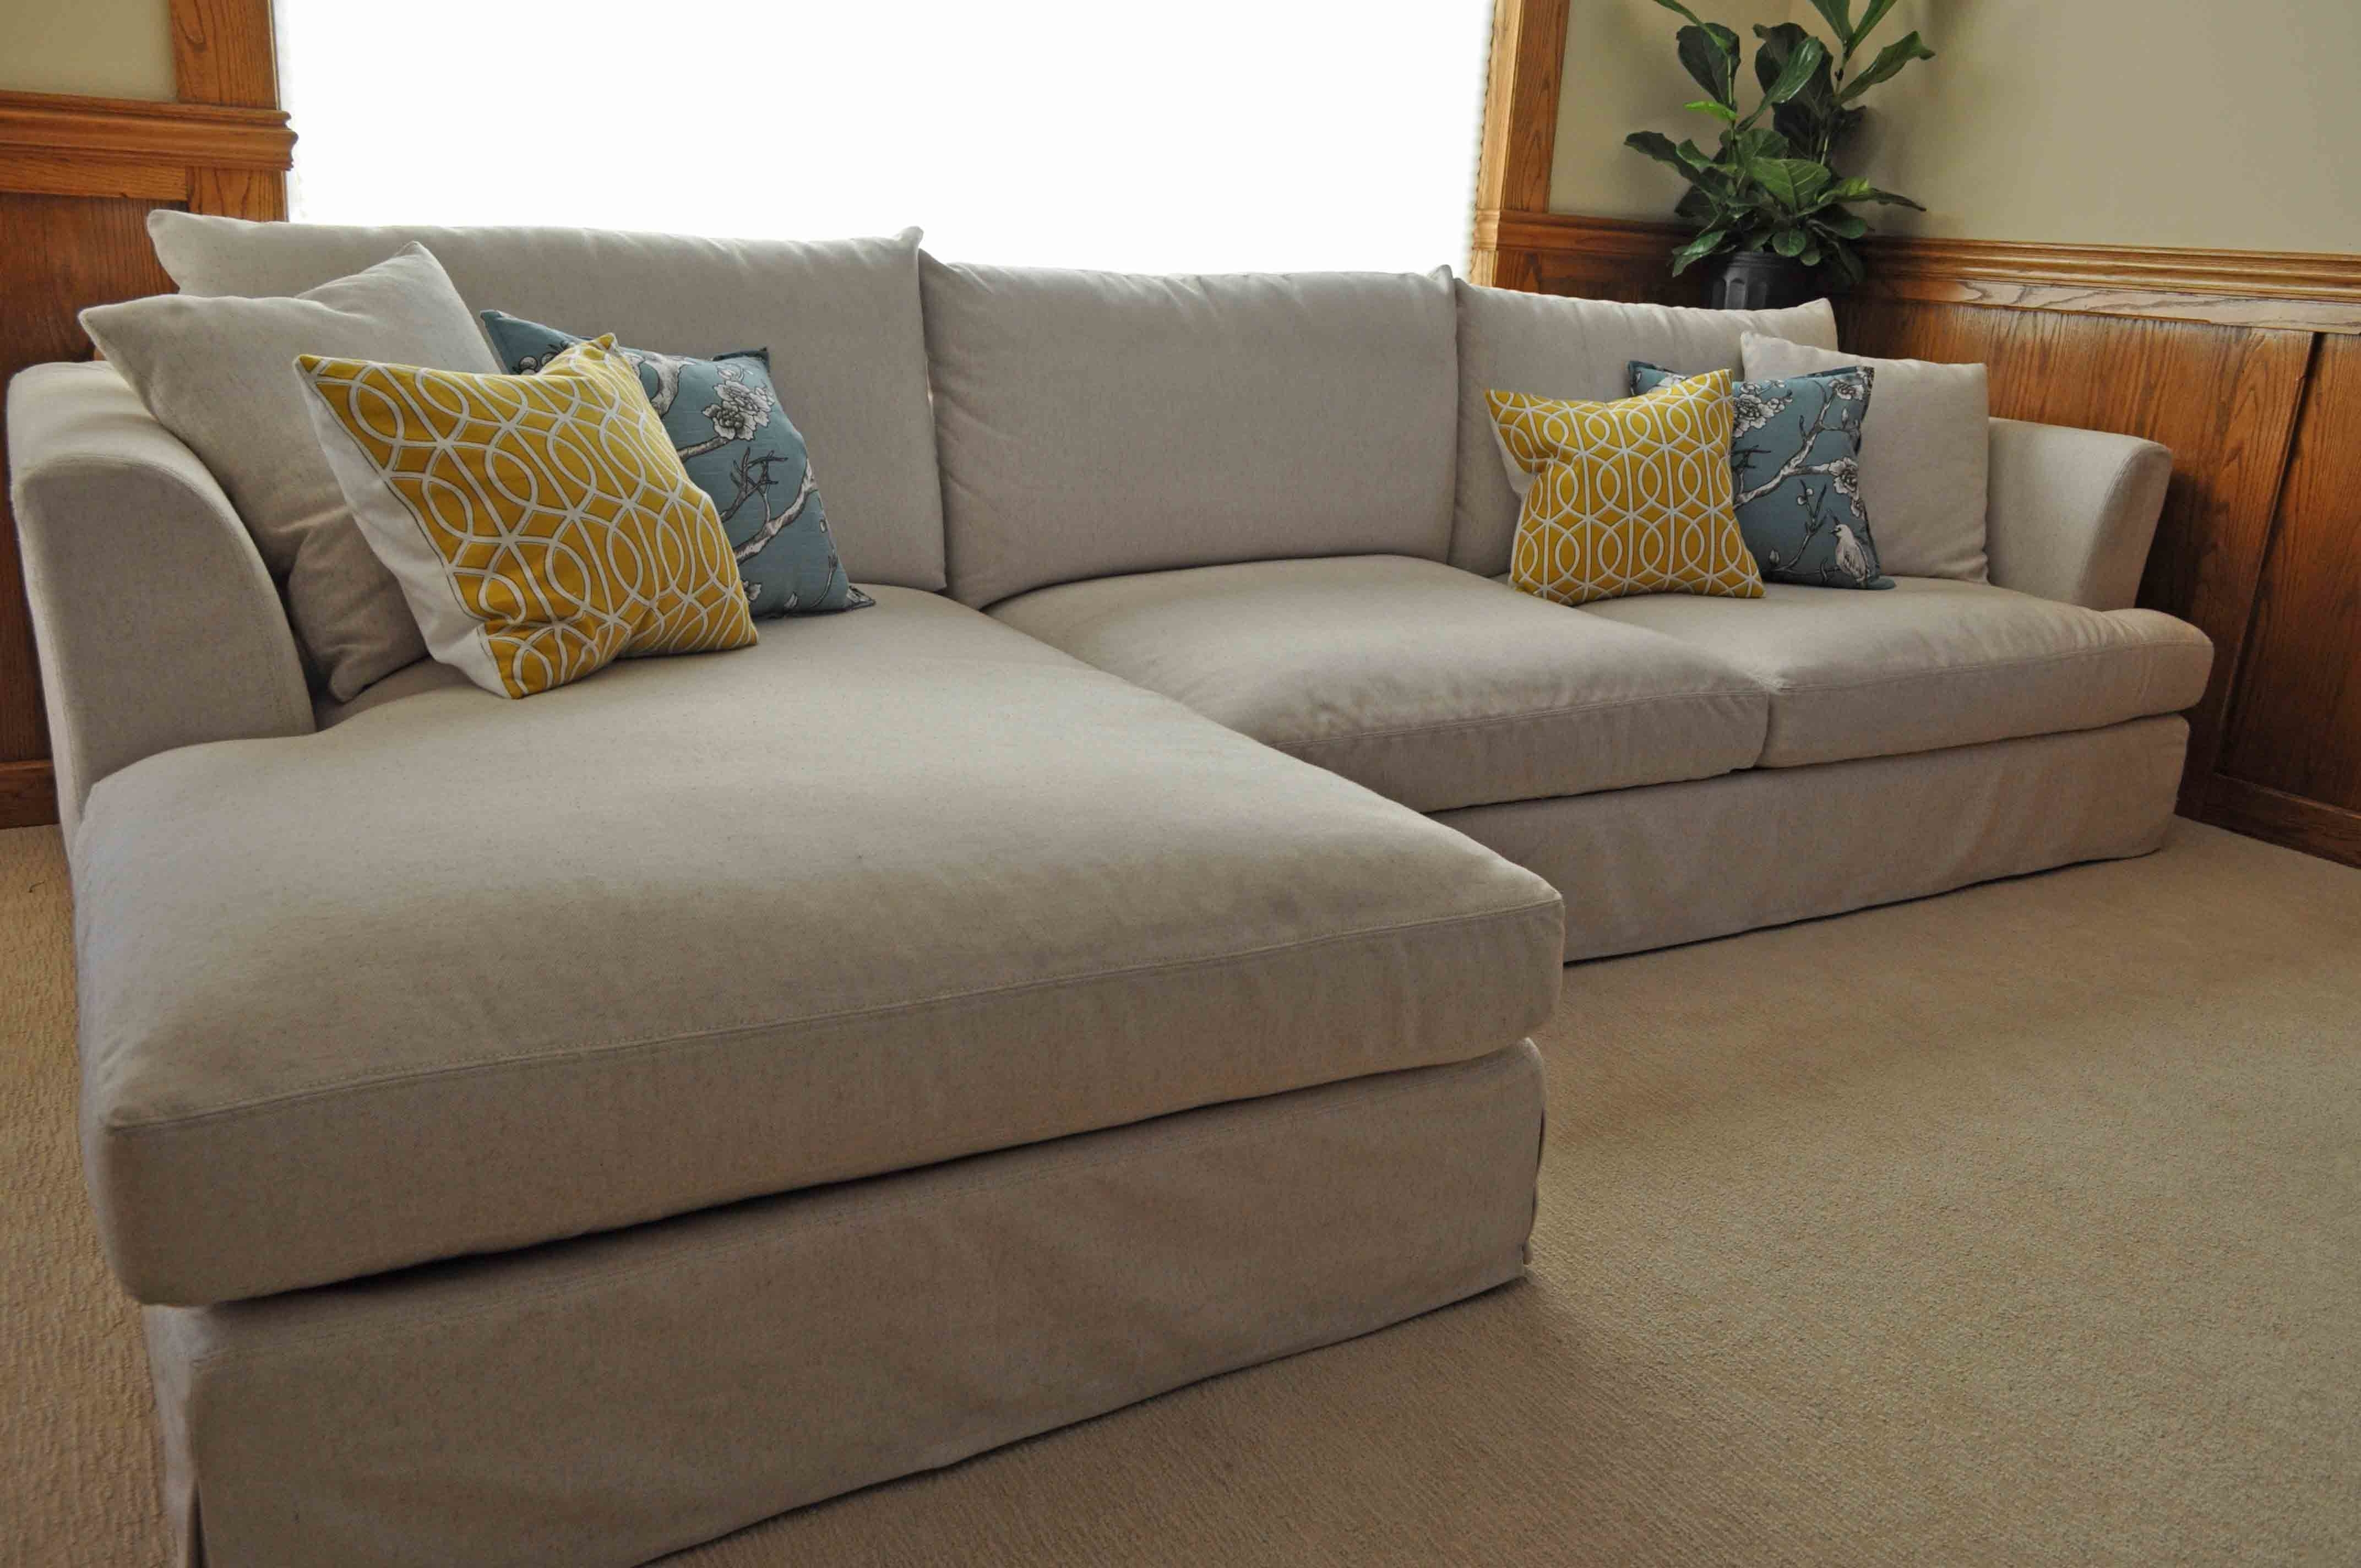 Large Comfortable Sectional Sofas For Widely Used Sofa : Comfortable Sectional Sofas Most Comfortable Sofa Ashley (View 3 of 20)